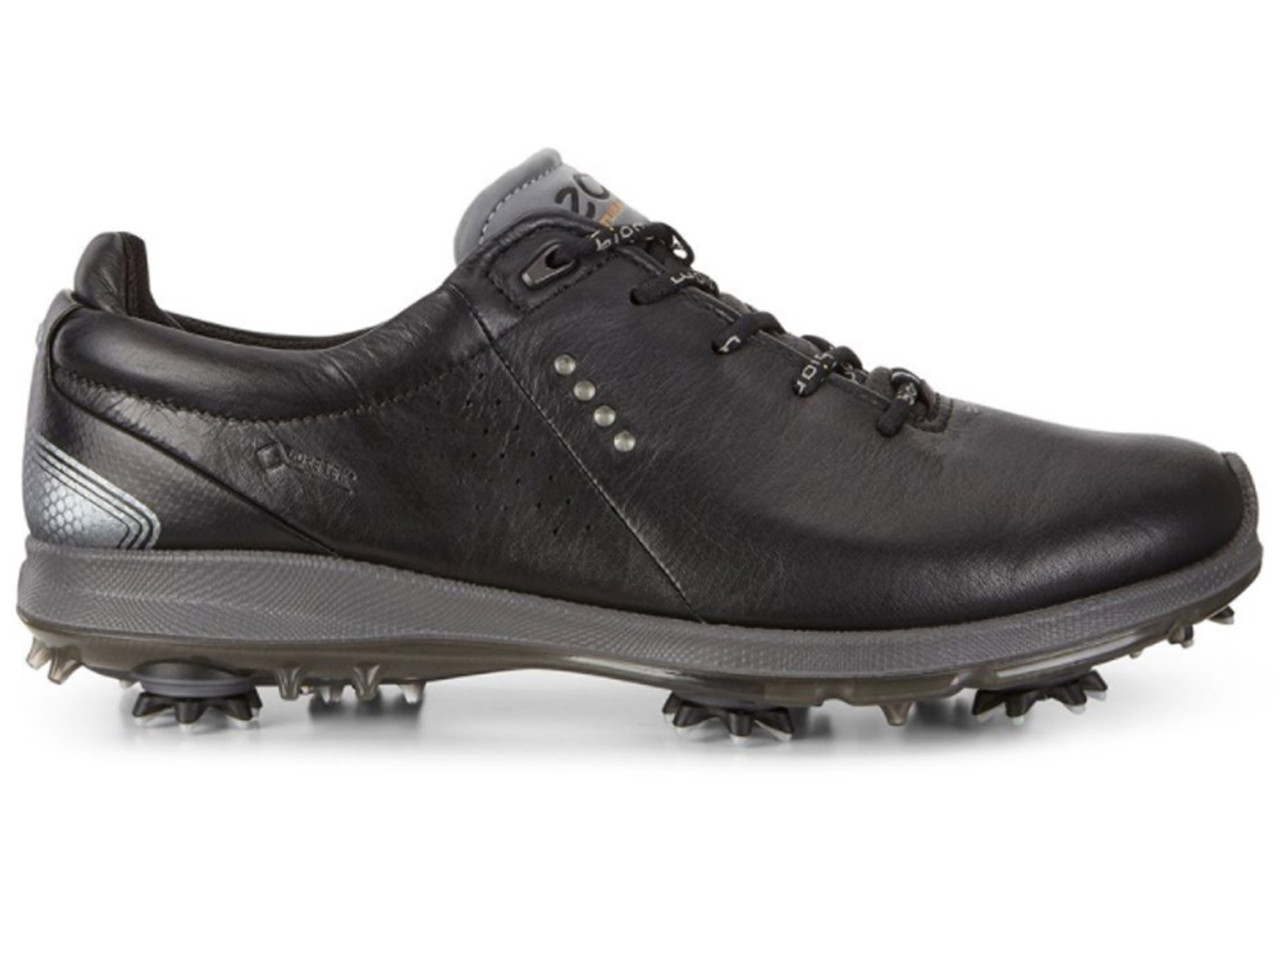 Ecco Biom G2 Golf Shoes - Black/Black